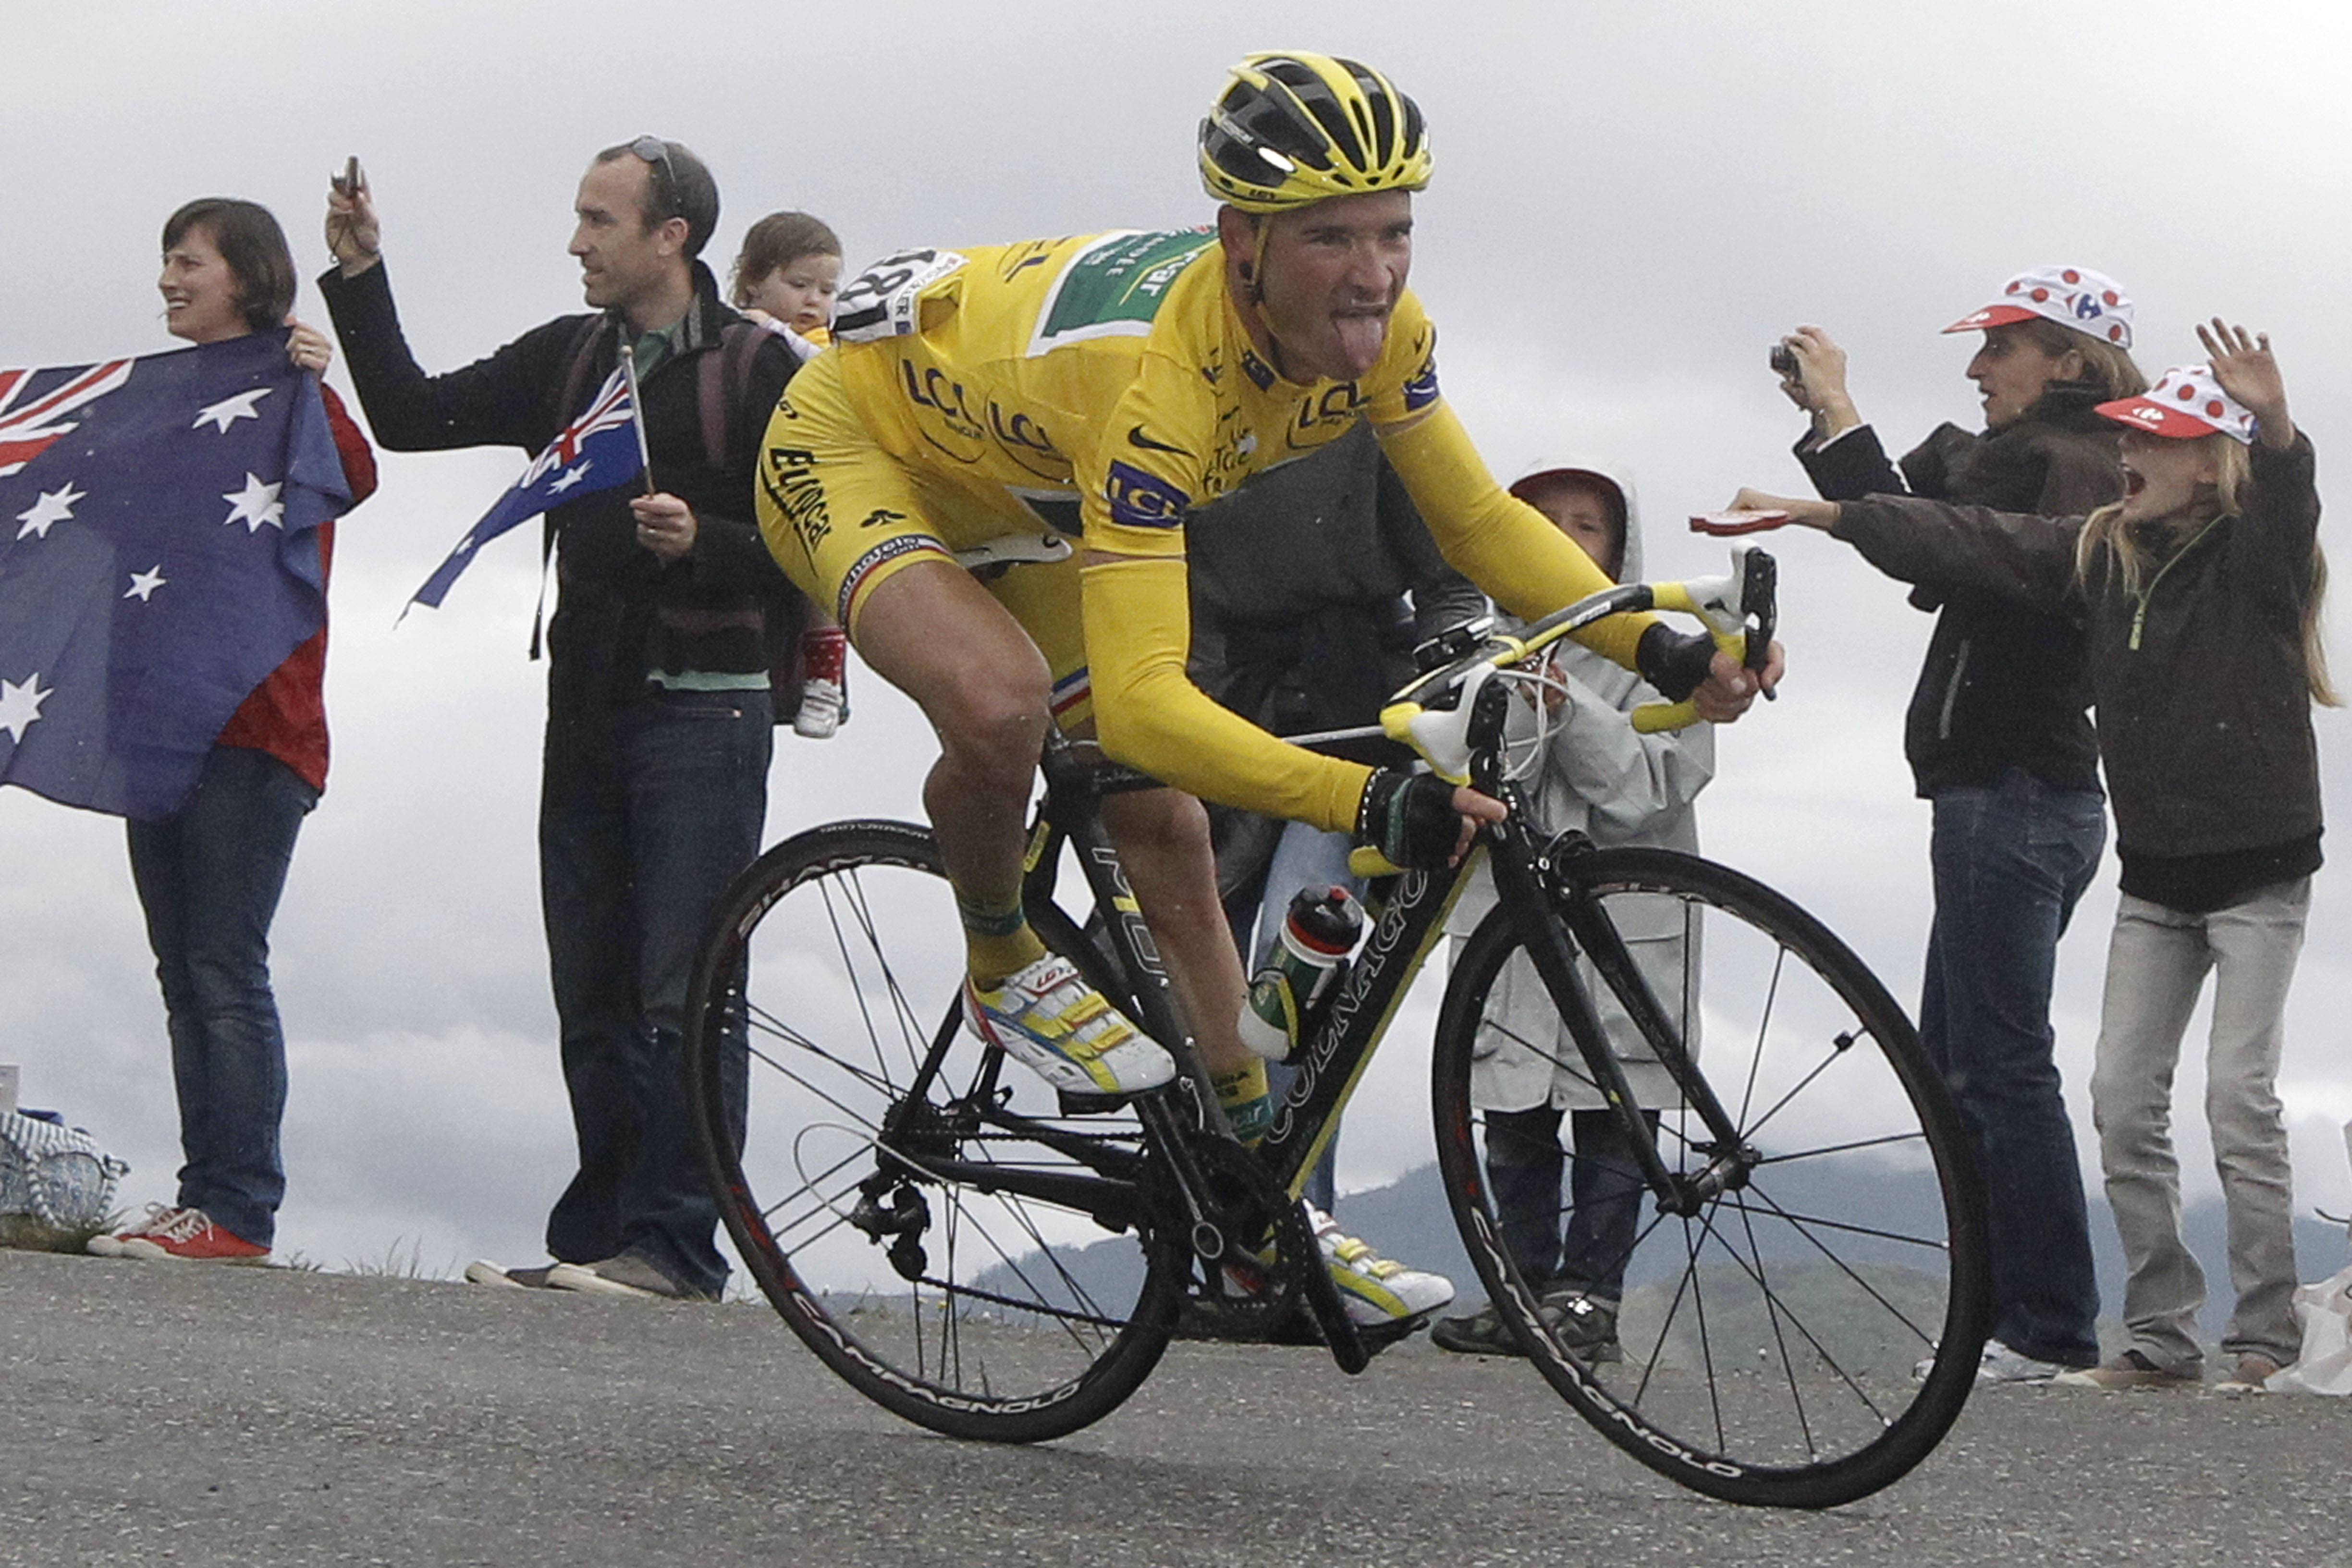 Contador attacks, gains on Tour leader Voeckler